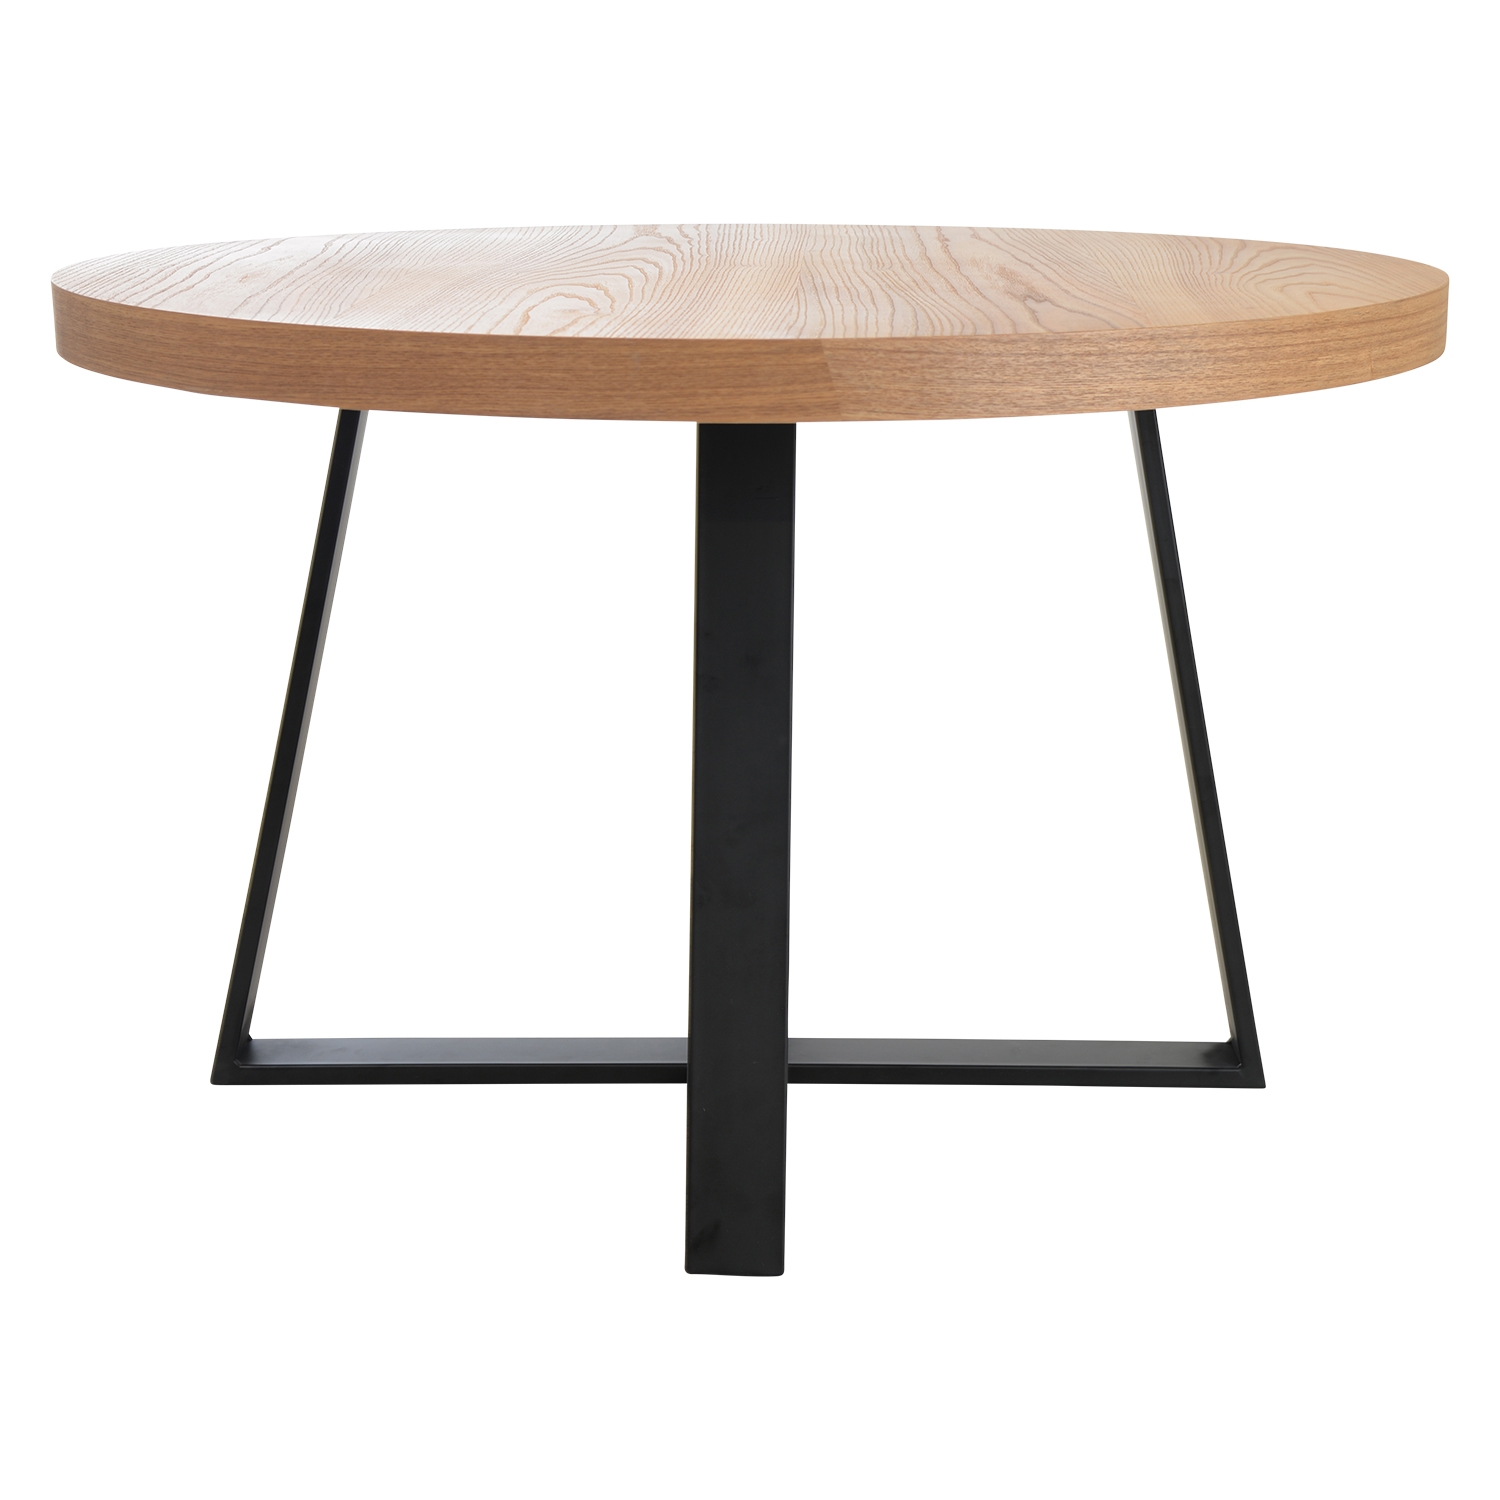 Image of Casa Ealing Round Fixed Dining Table